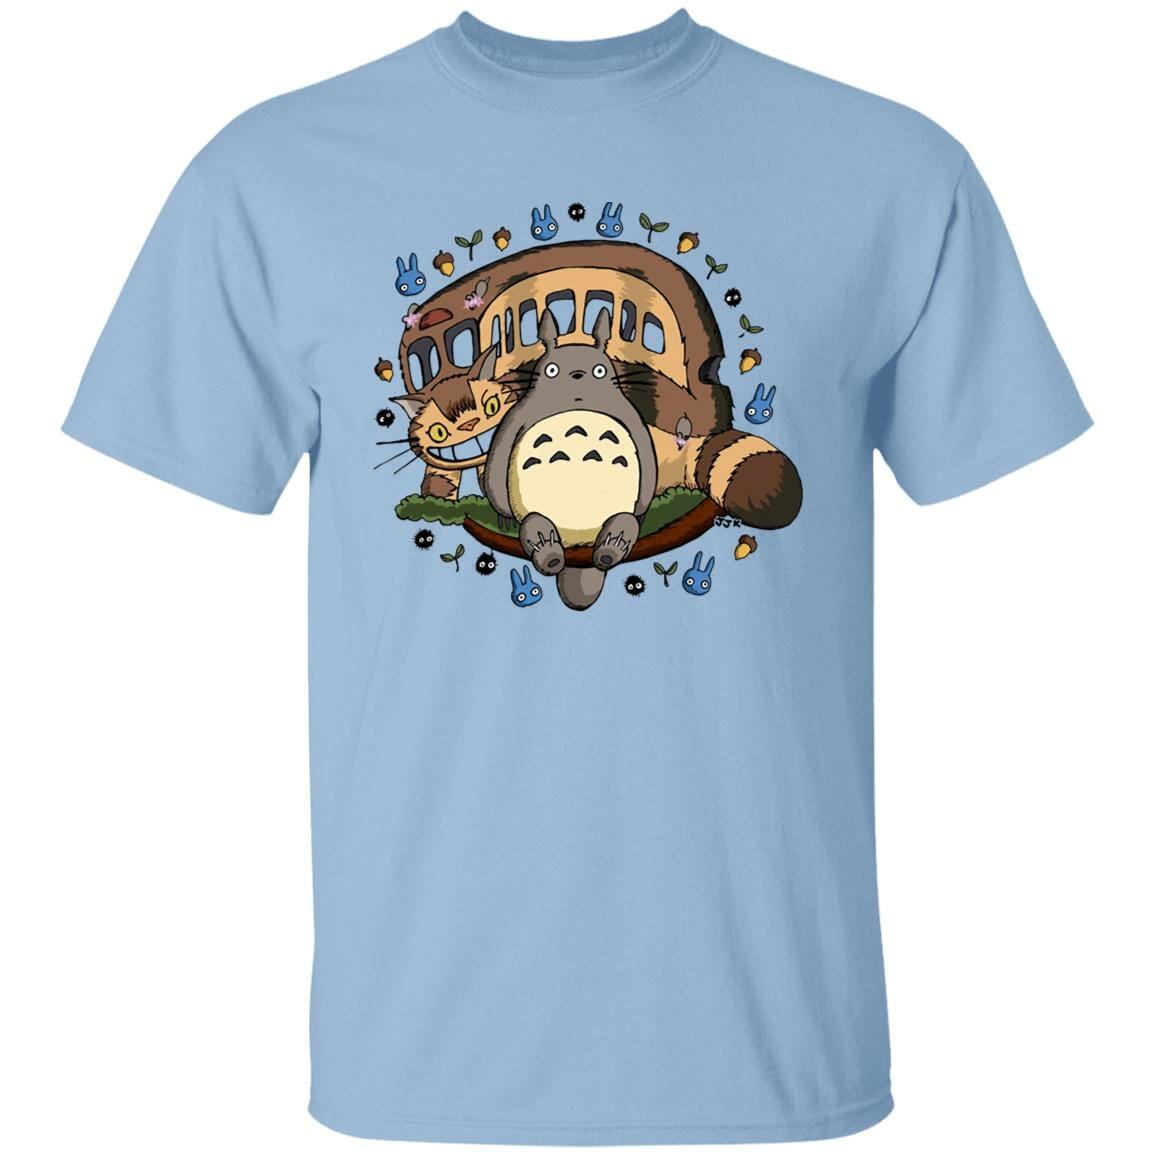 Totoro and the Catbus T Shirt